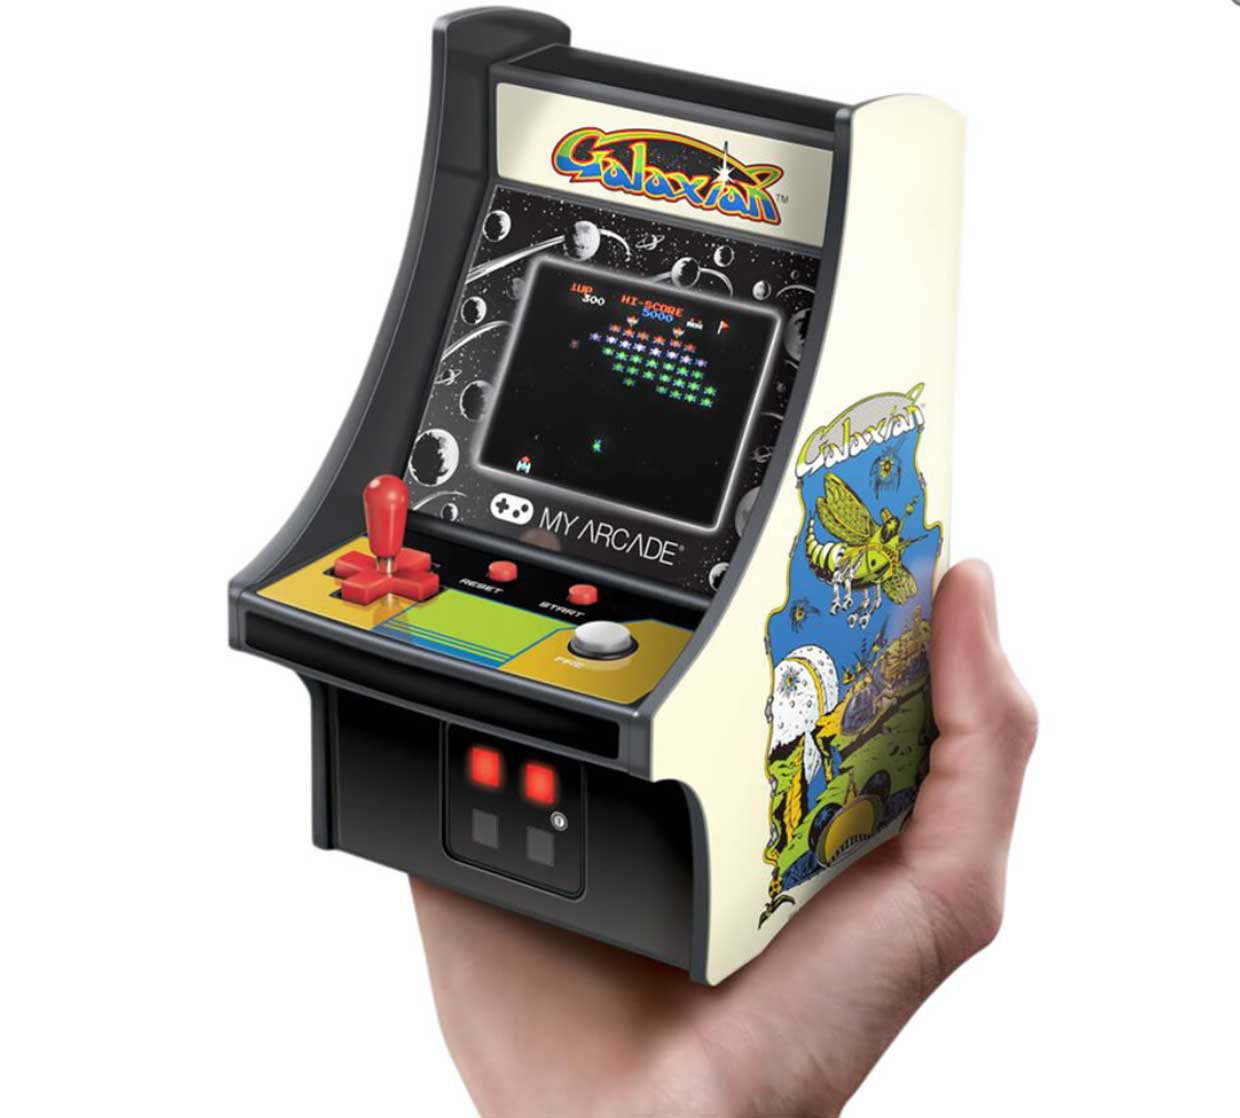 Handheld Galaxian Arcade Game Channels Tiny 80s Nostalgia